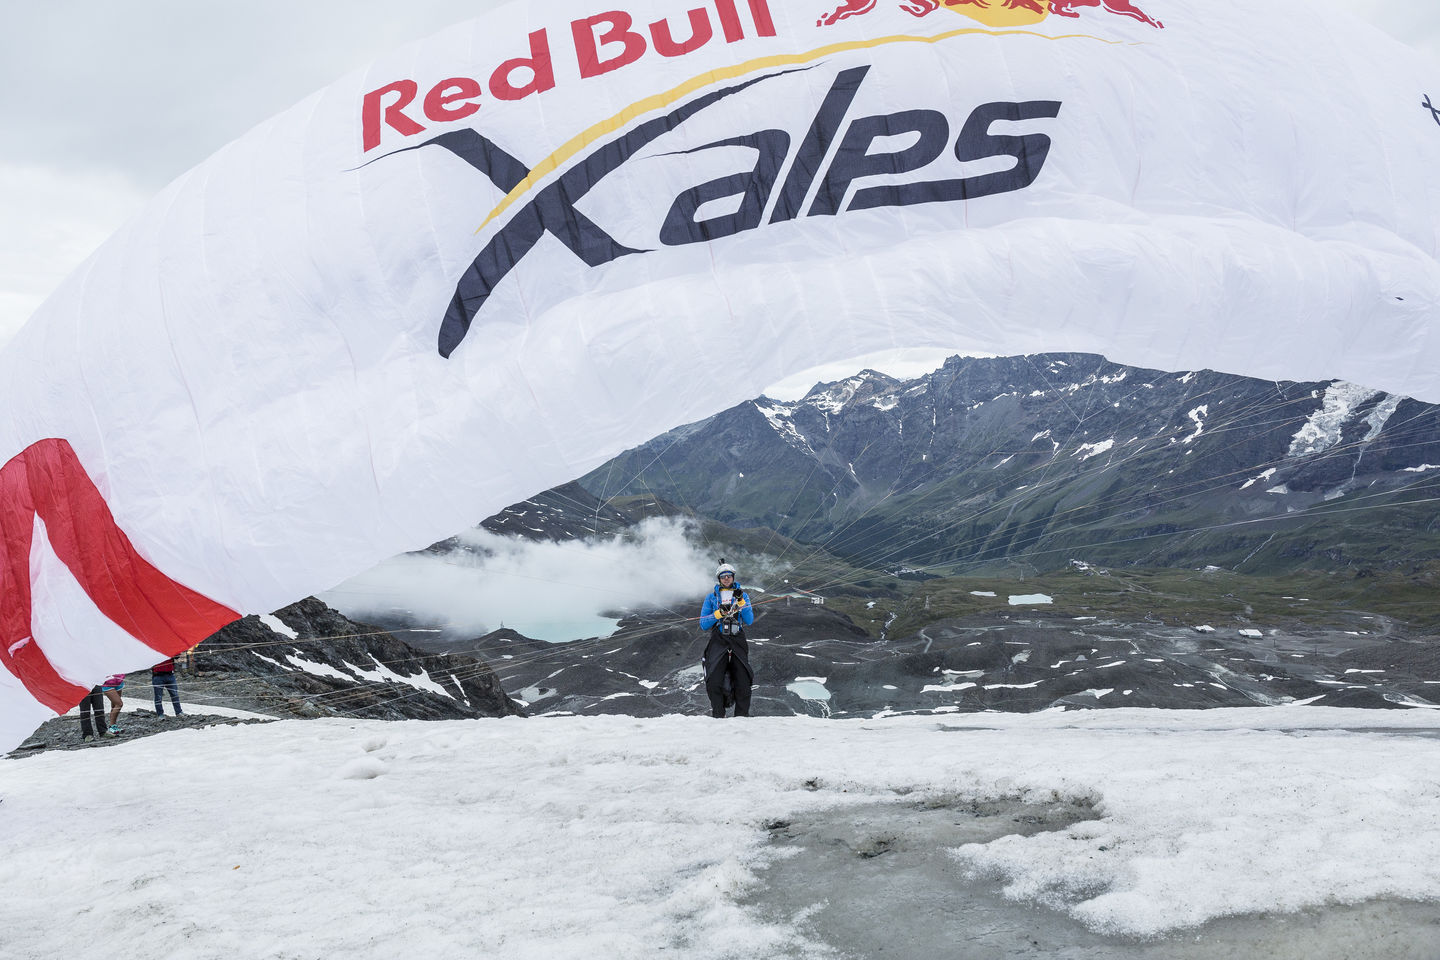 Meet the paraglider pilots competing in the Red Bull X-Alps